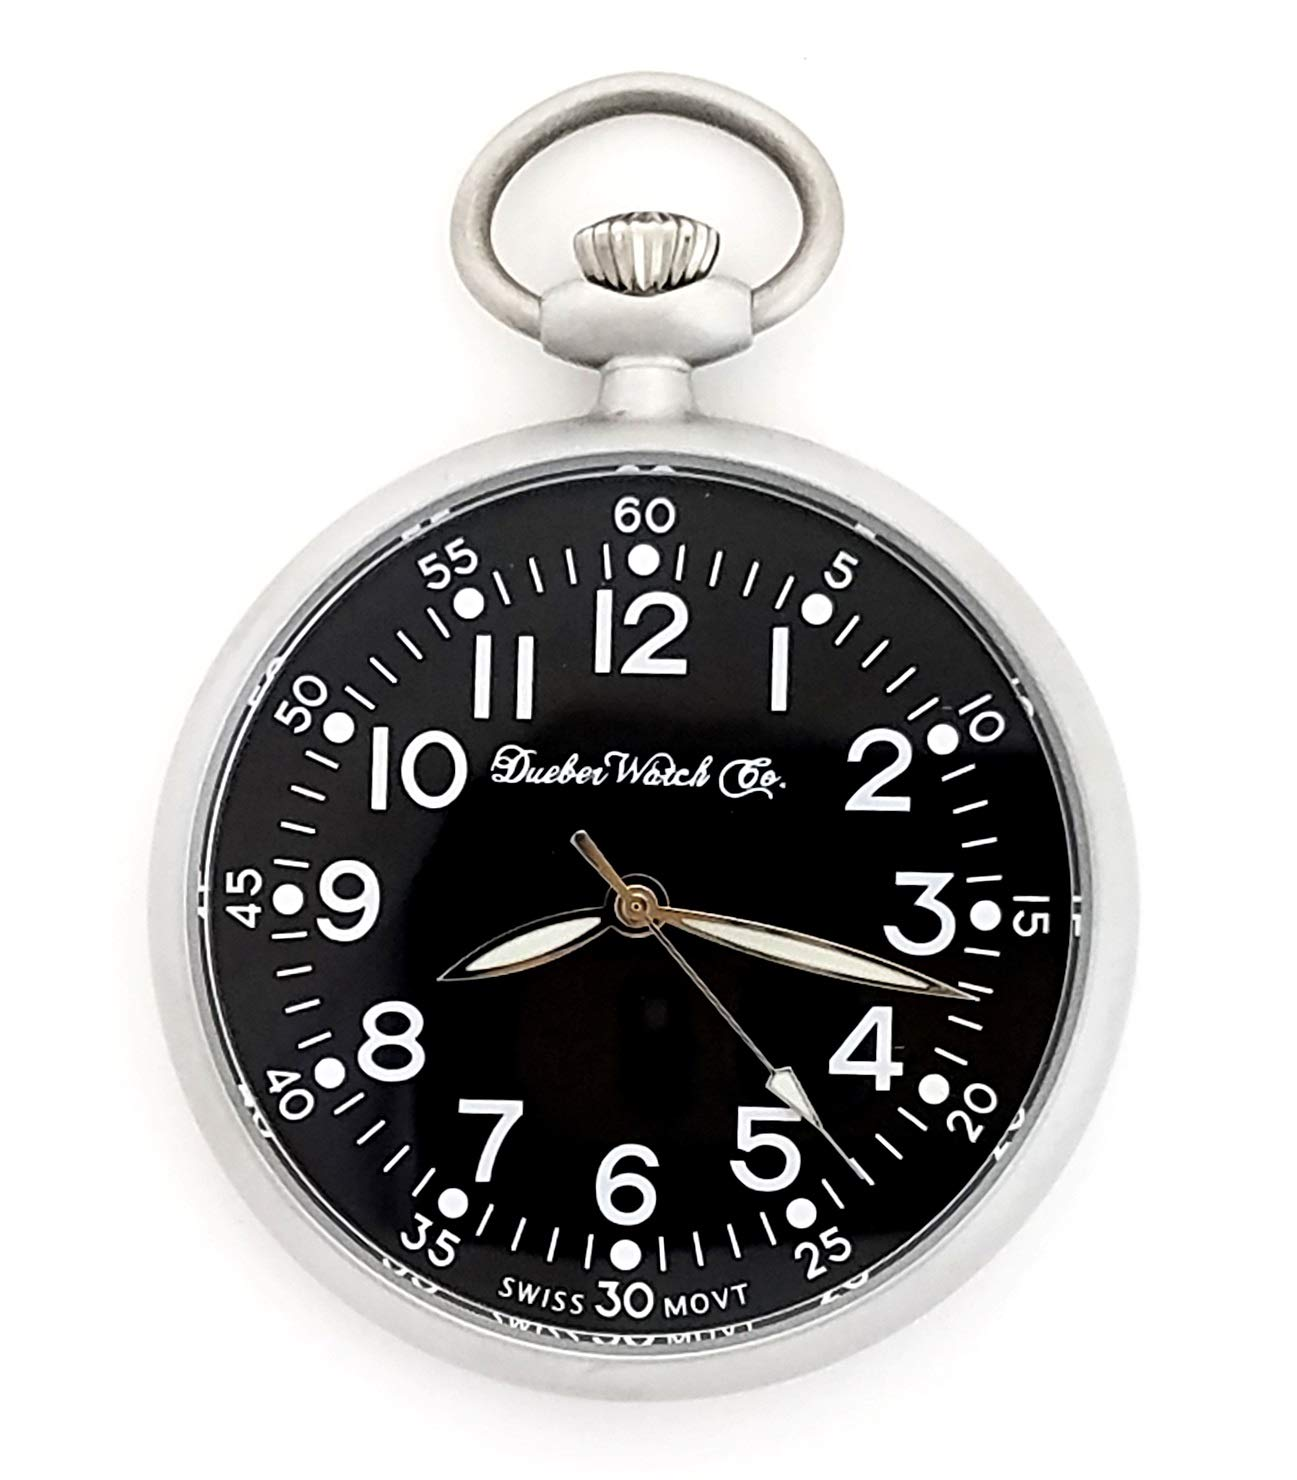 Dueber Military Style Pocket Watch with Black Dial, Lumious Hands, Satin Chrome Steel Case by Dueber Watch Co